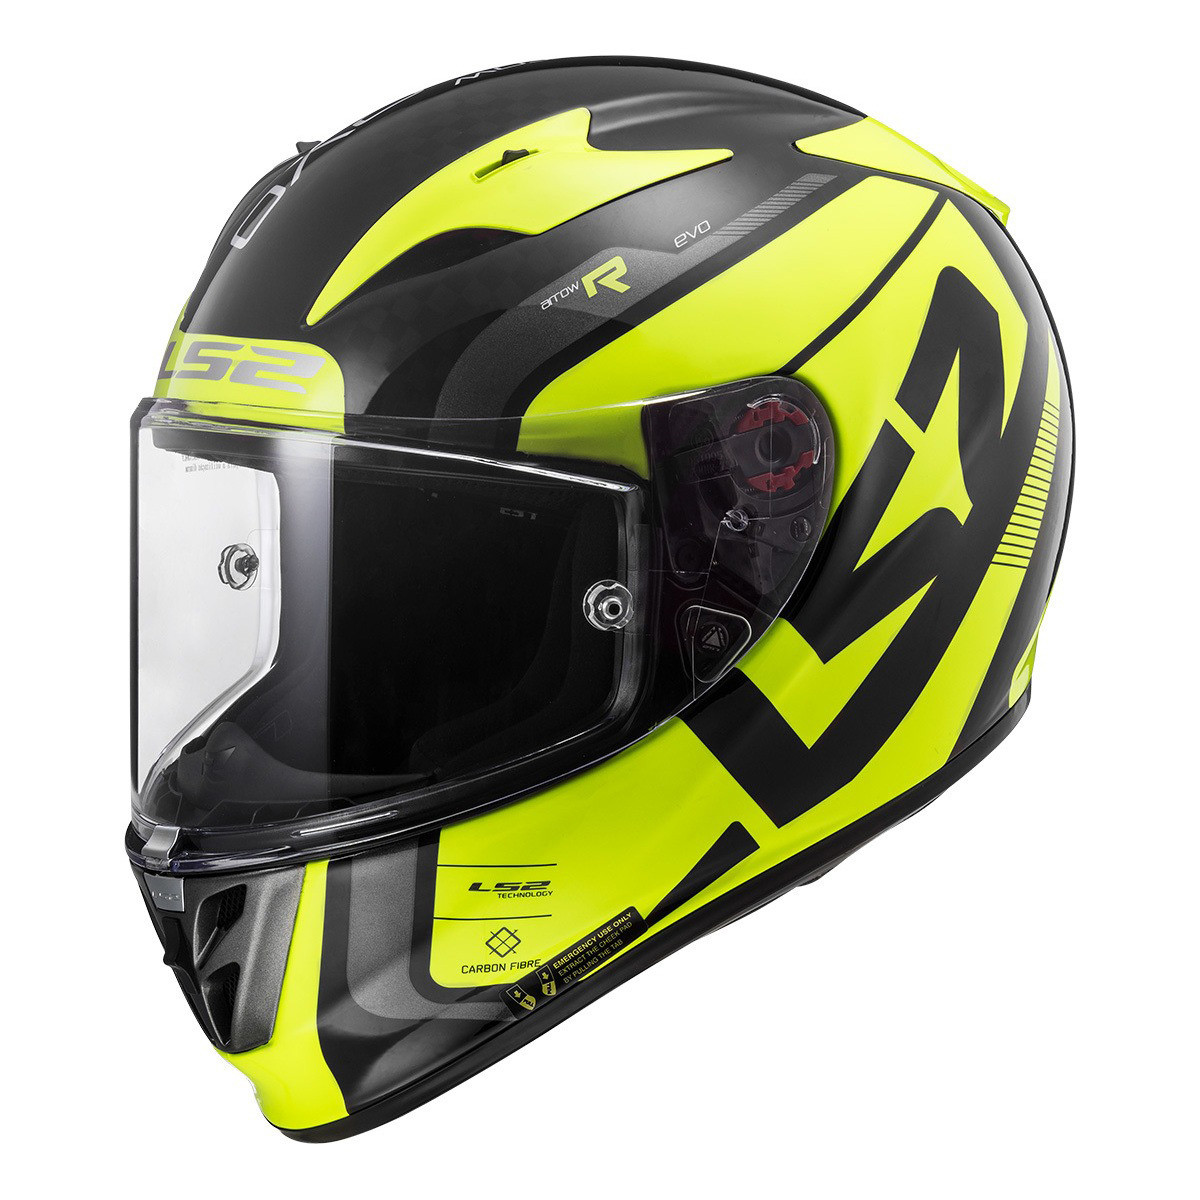 Casco Integral LS2 FF 323 Arrow C Sting Carbono